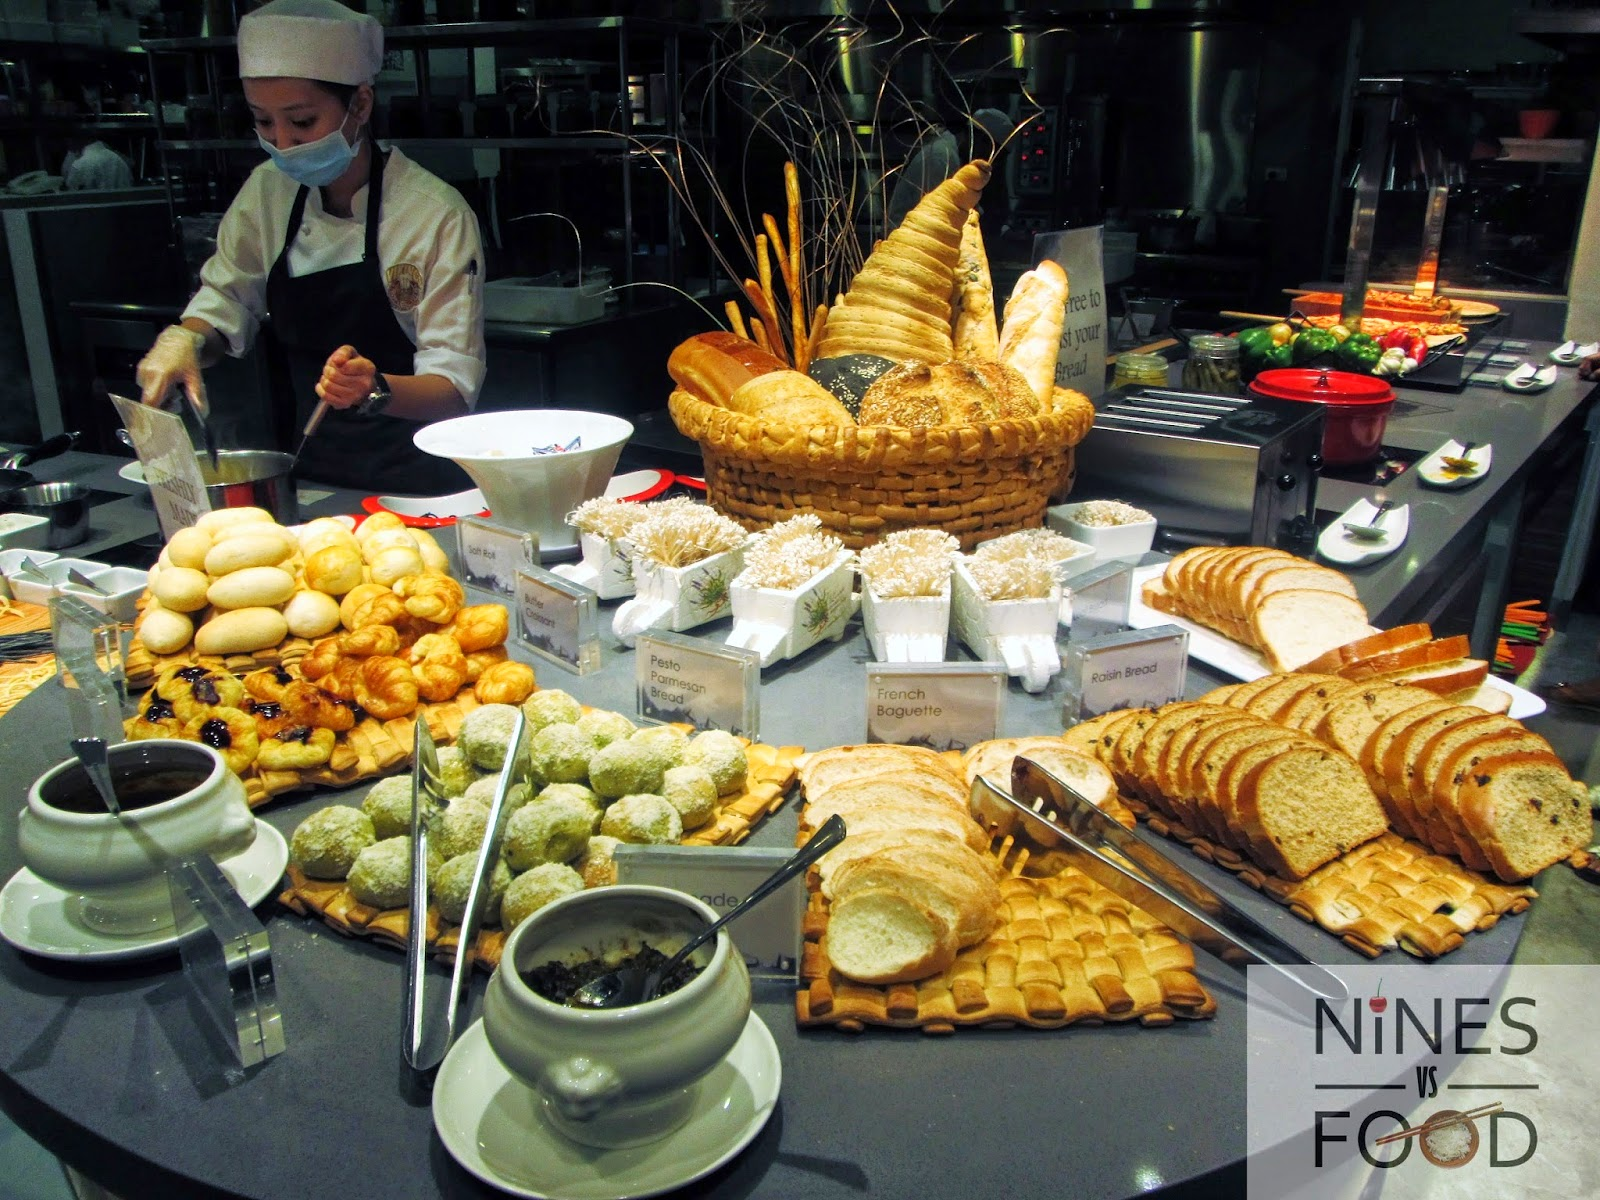 Nines vs. Food - Vikings SM Megamall-12.jpg